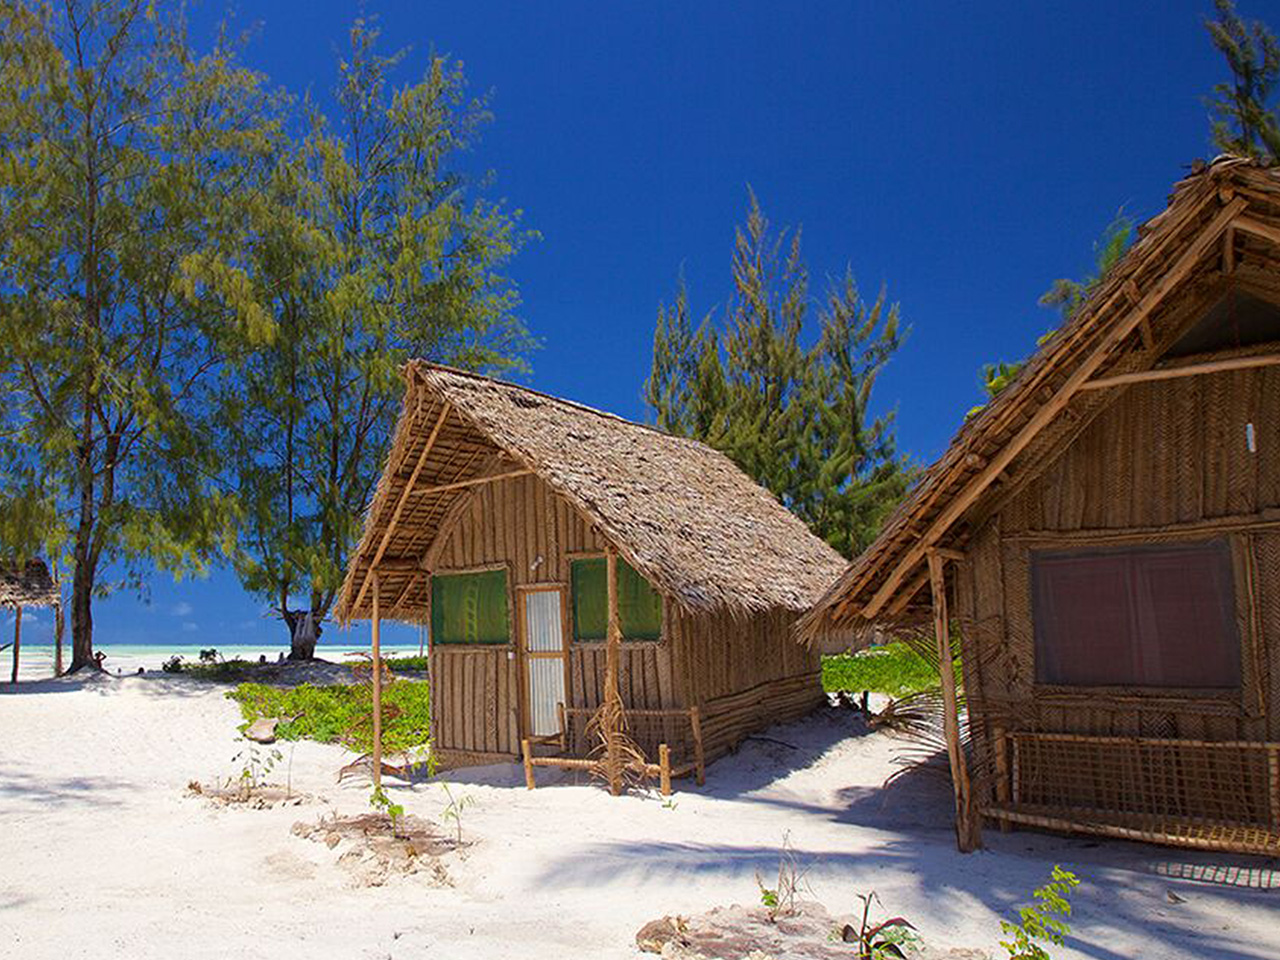 Beaches of mainland tanzania safaris, tours and holiday packages